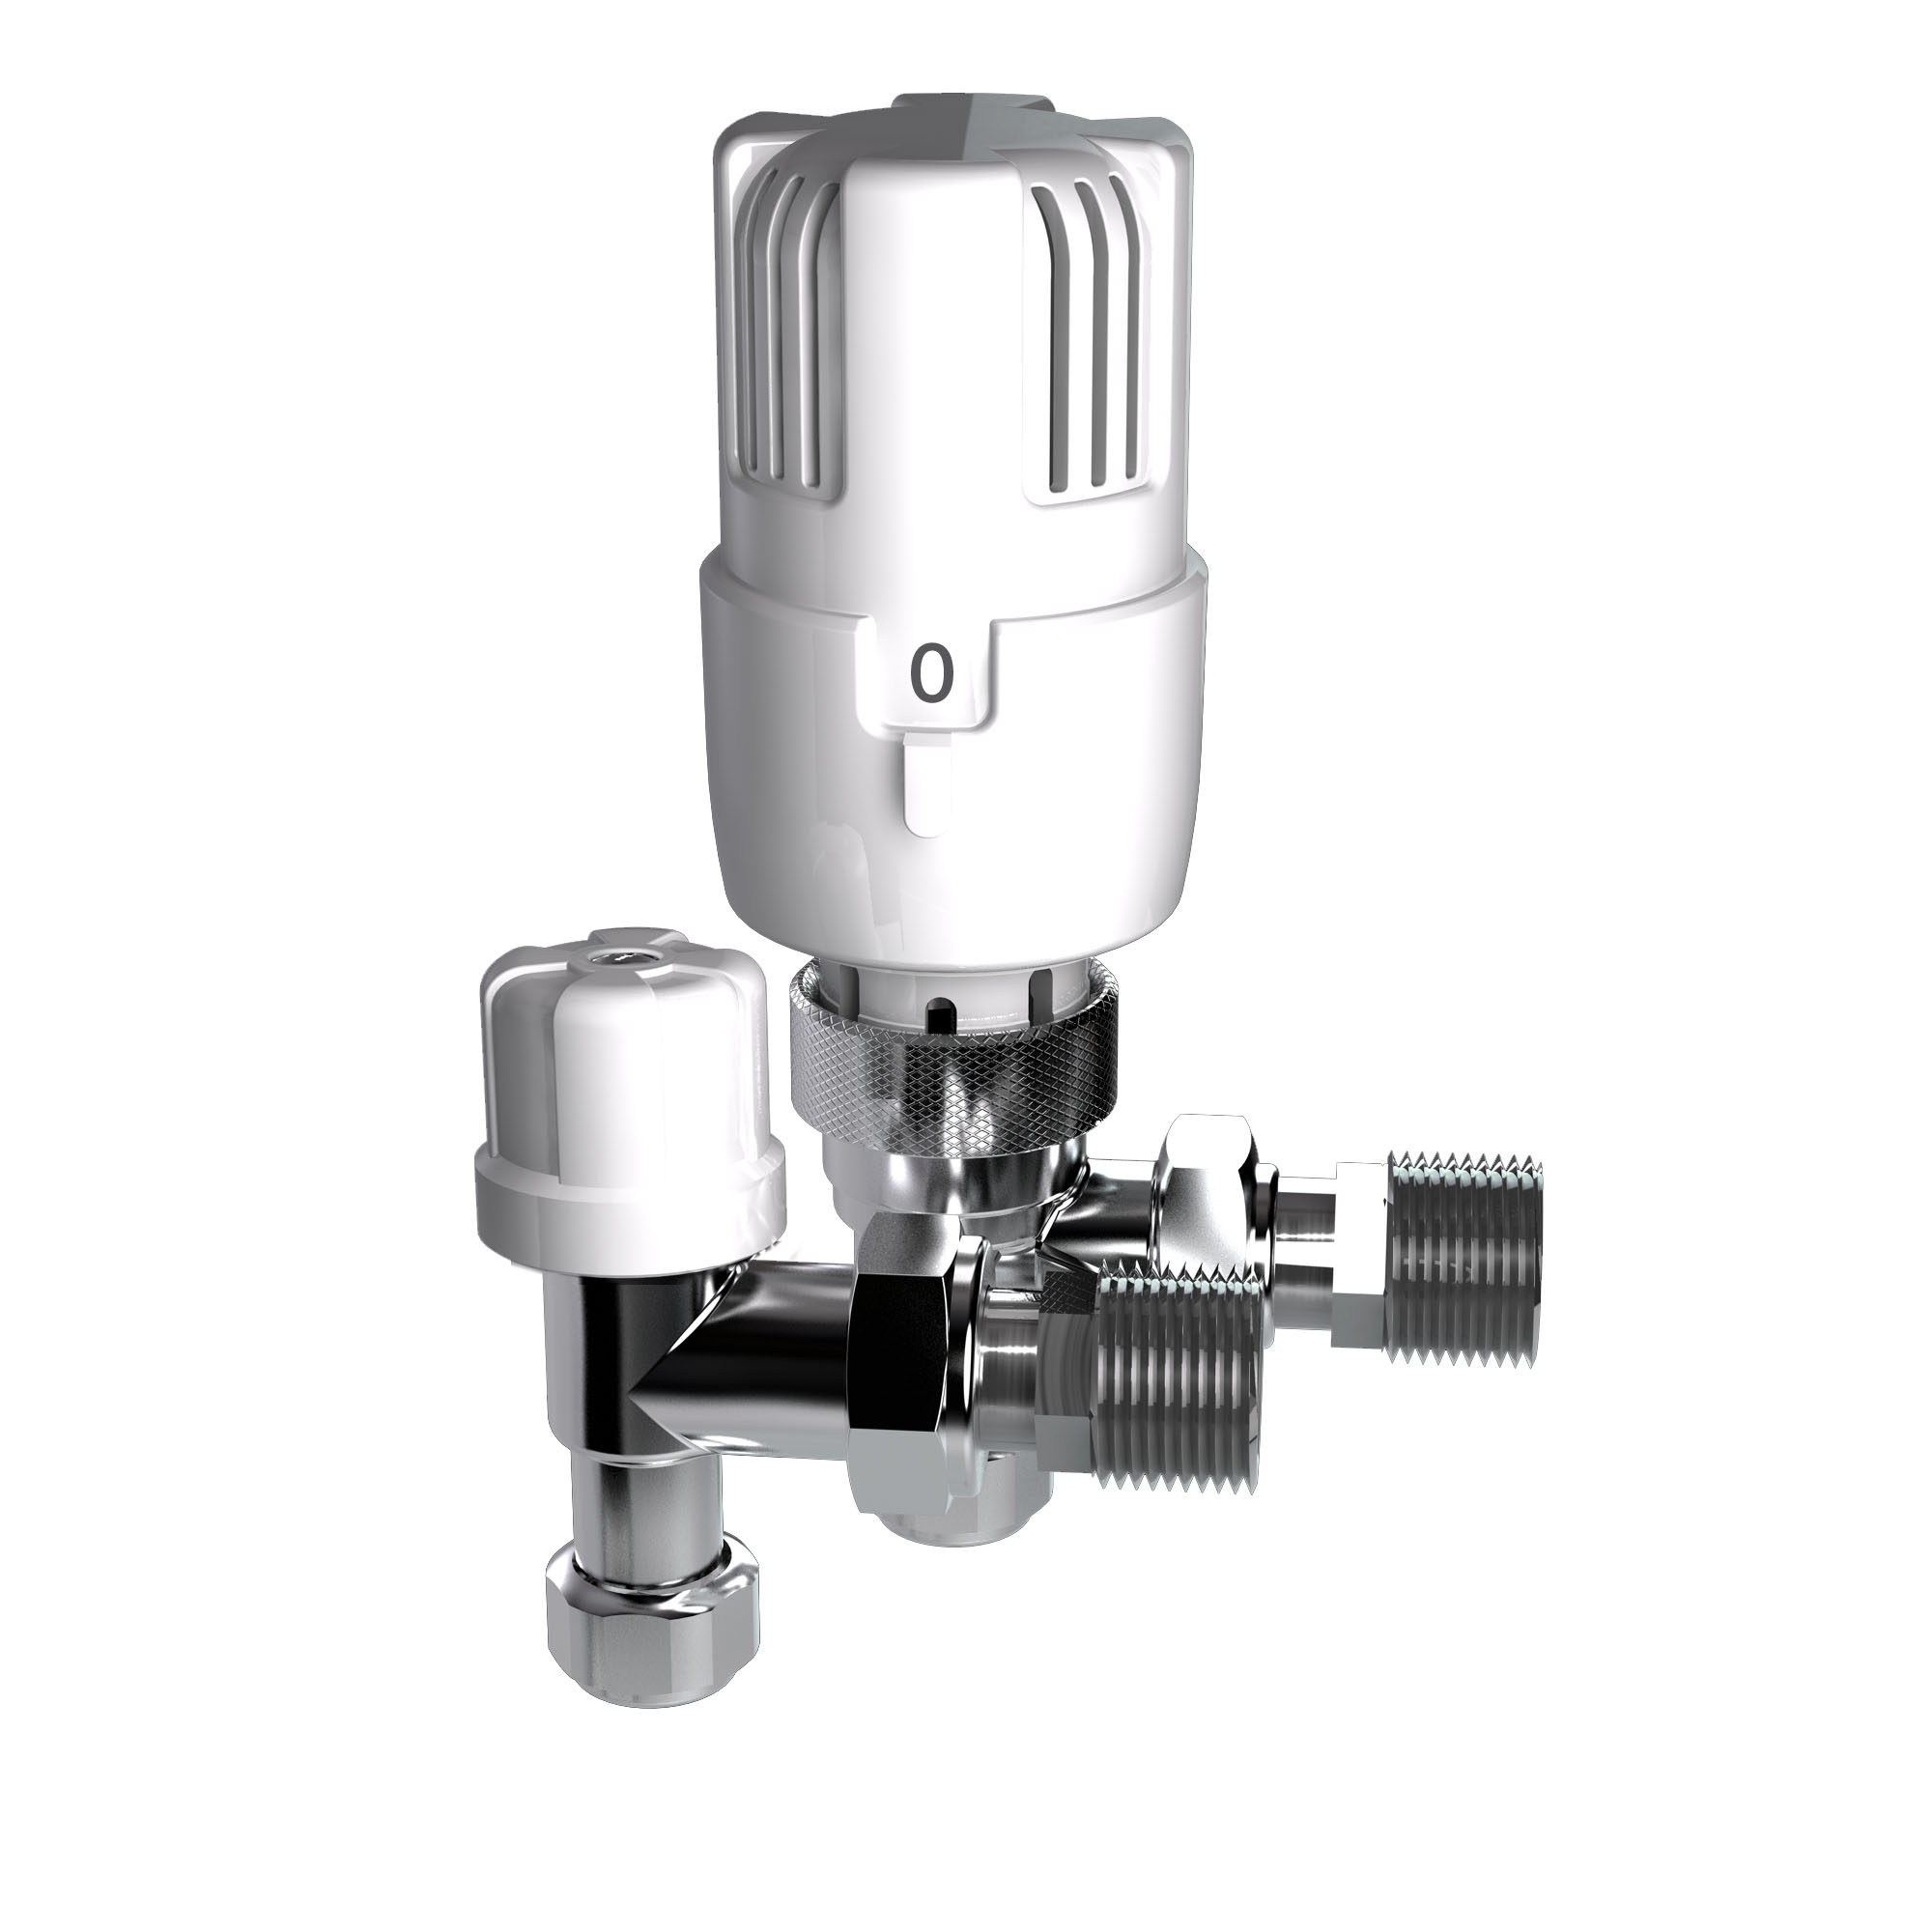 Inta i-Therm 15mm Angled TRV & i-Ten Lockshield Pack